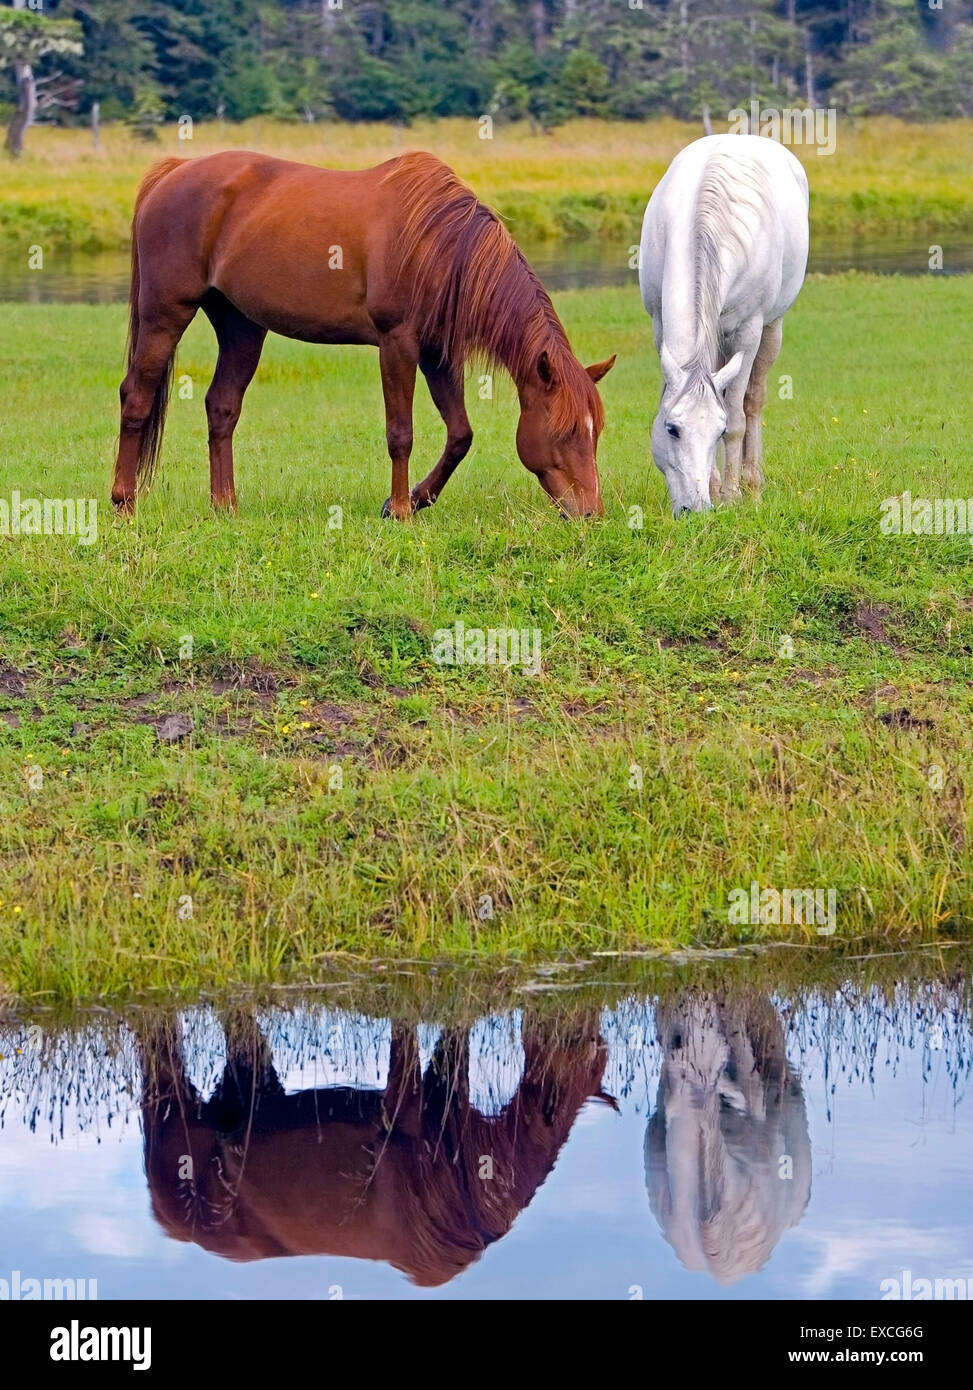 Arabian Horses chestnut and white grassing by creek, reflection in water Stock Photo